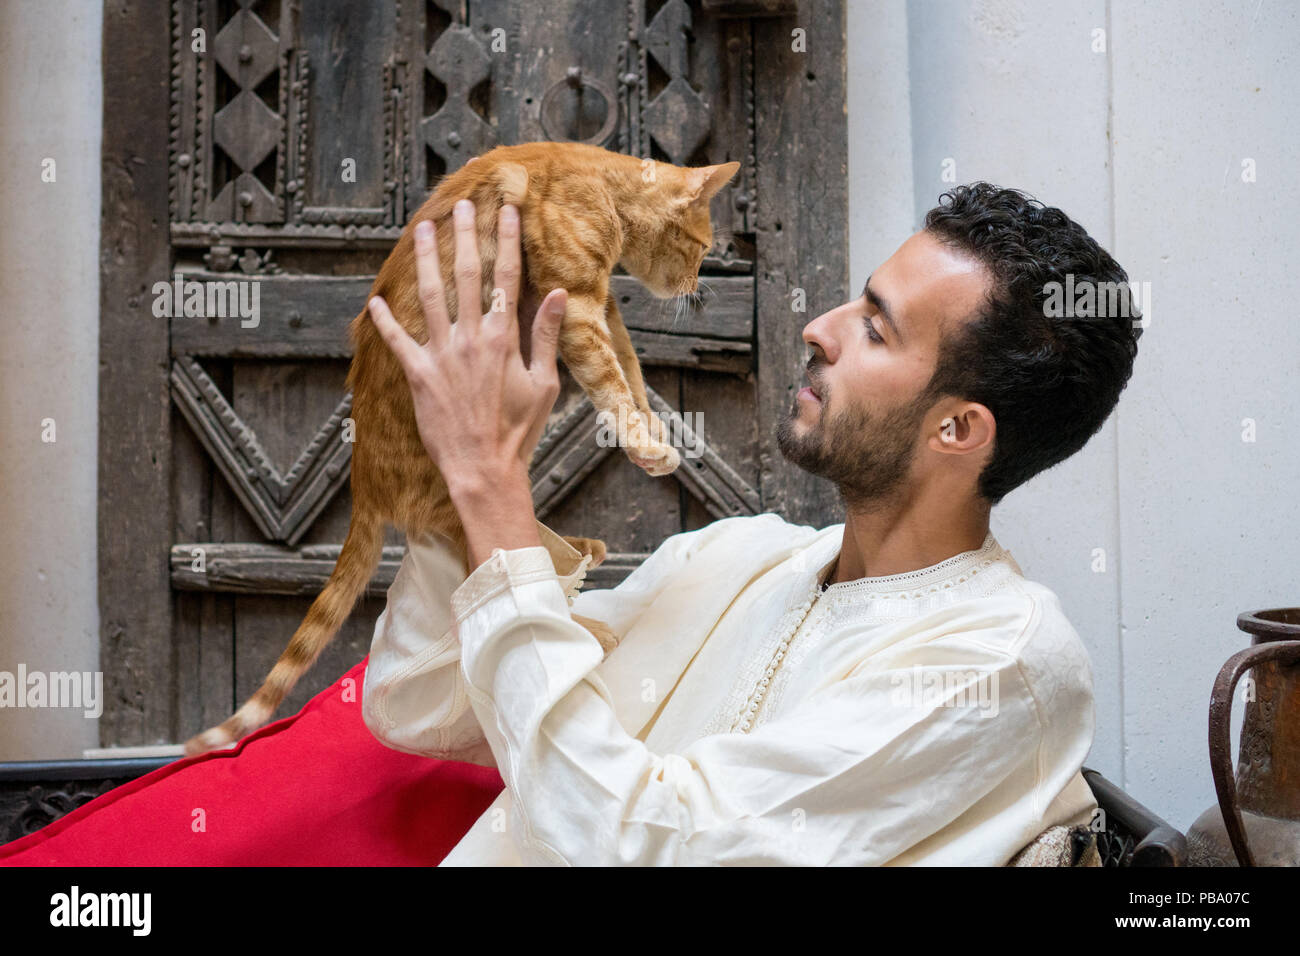 Young muslim man holding a yellow cat in front of a decorated wall - Stock Image